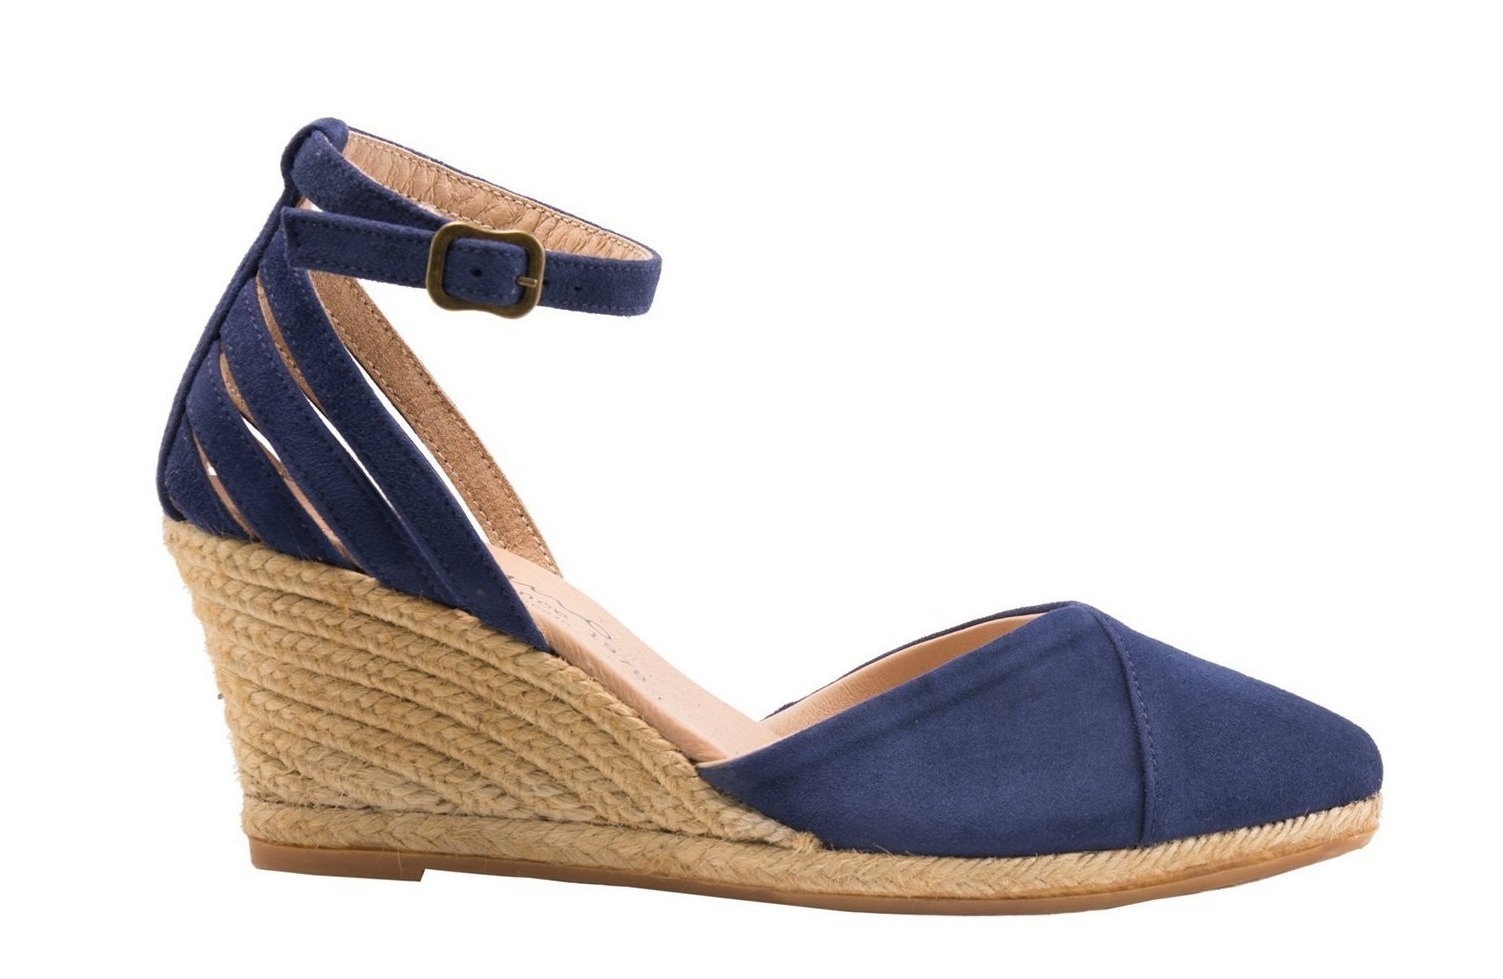 TEMPLO Black and Midnight Blue espadrilles